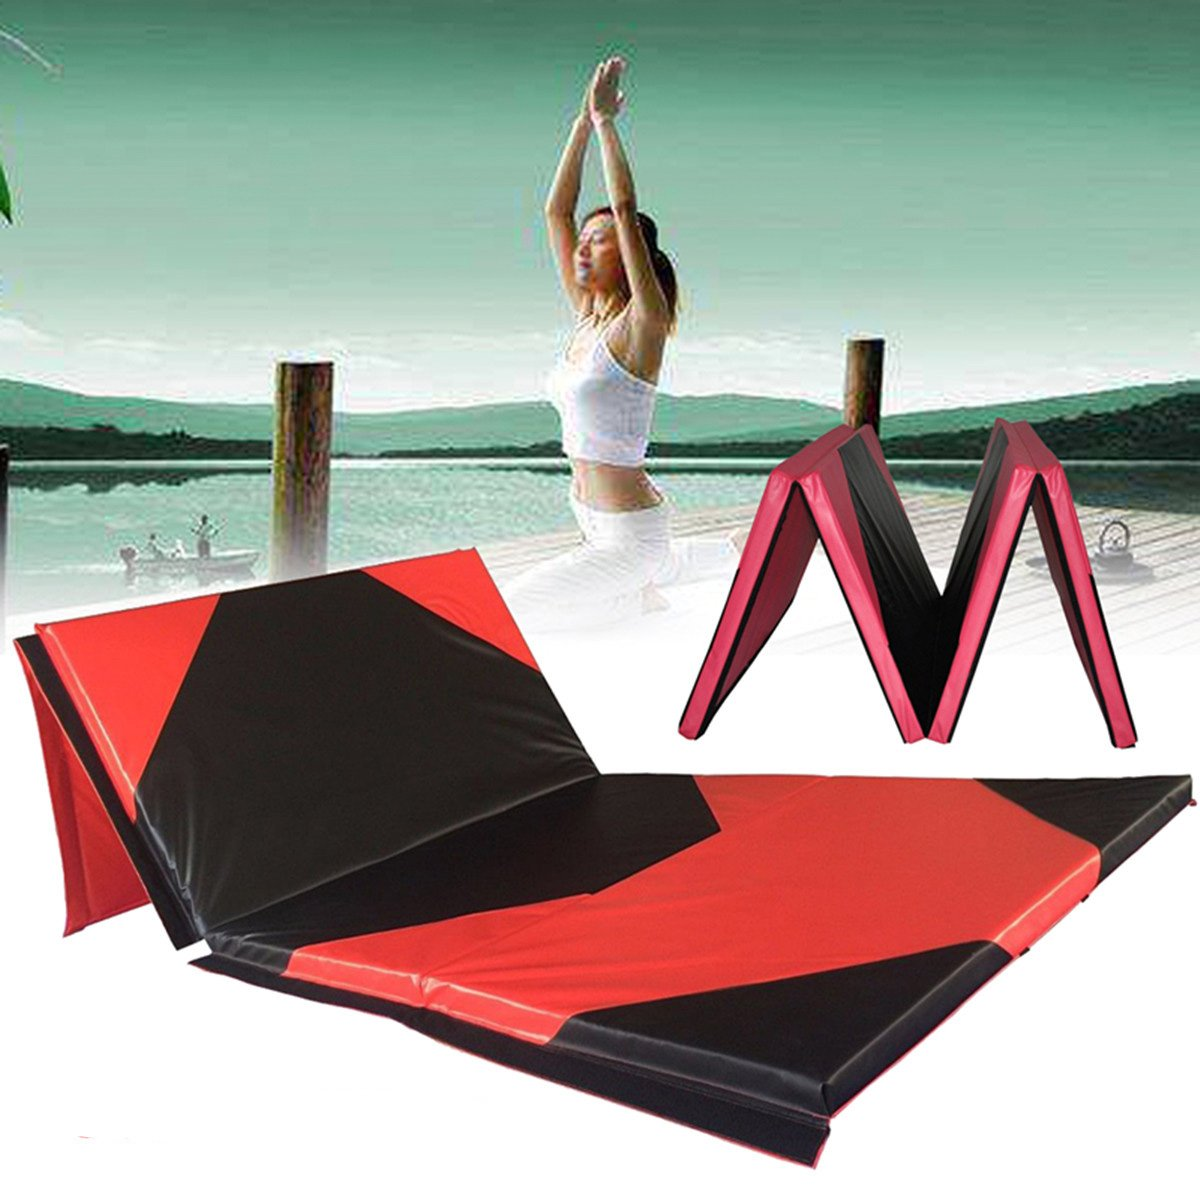 ShopSquare64 118x47x1.97inch Gimnasia Mat Gym Panel Plegable ...